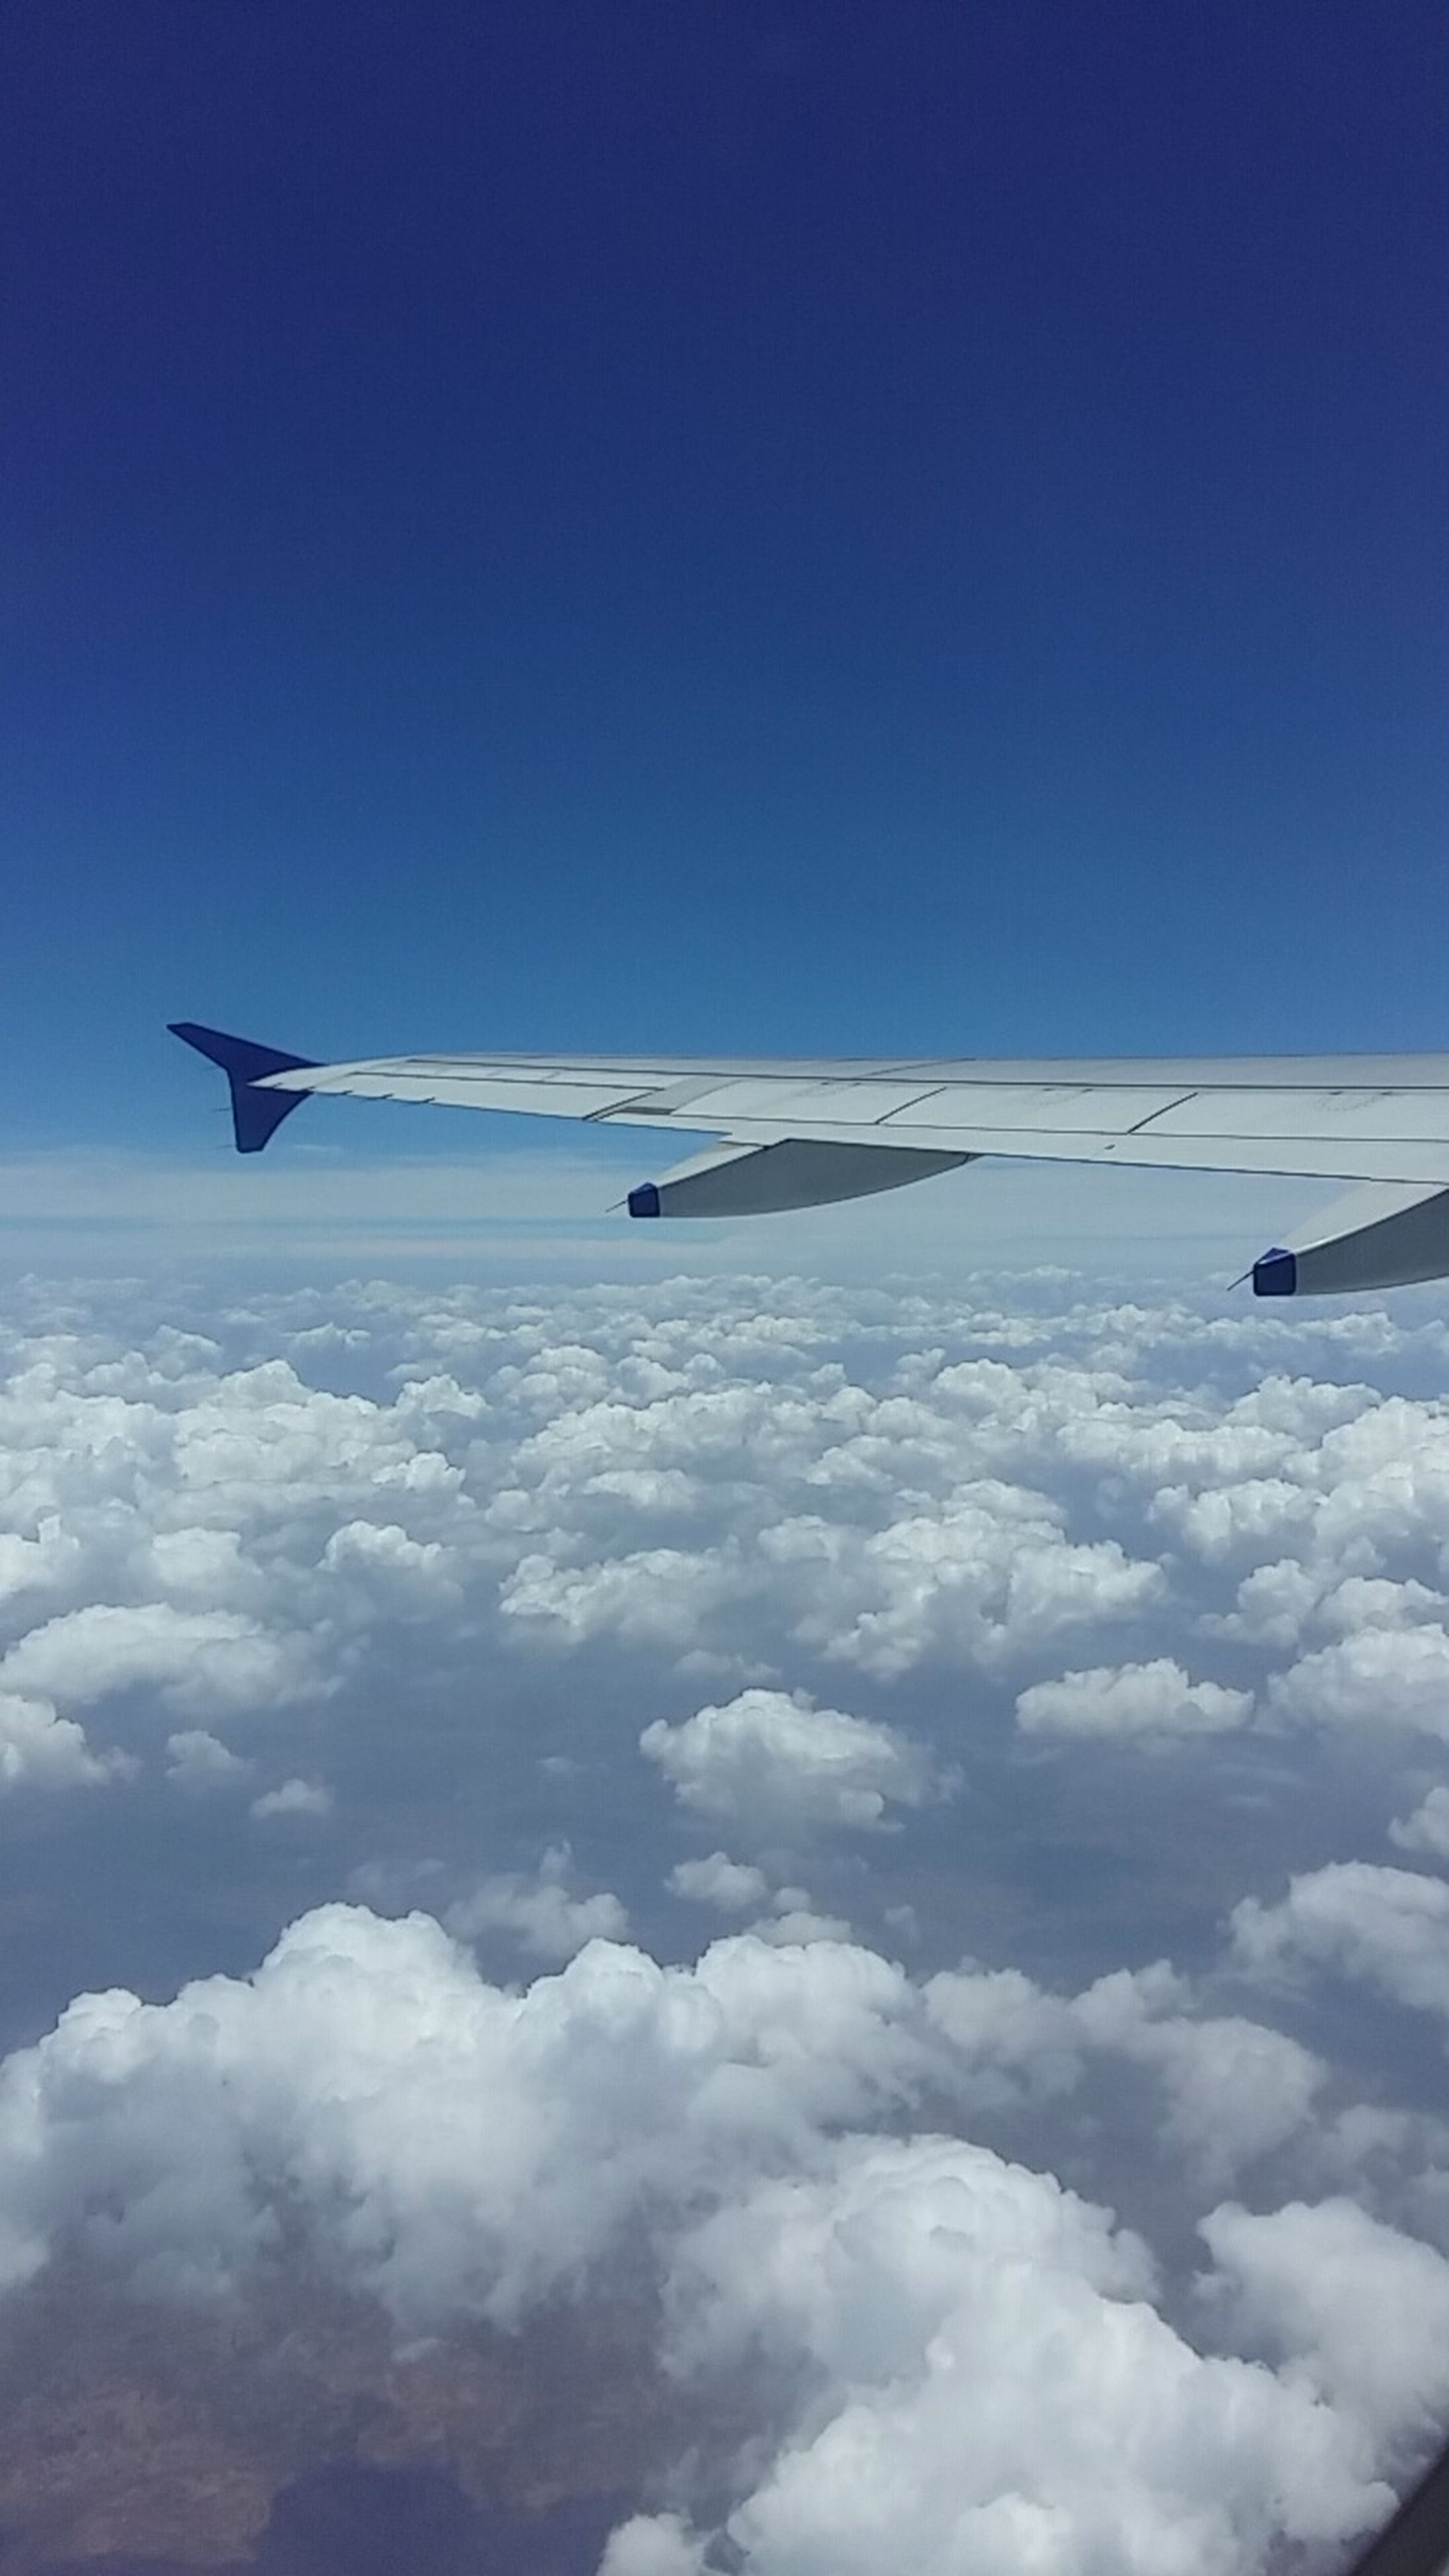 airplane, transportation, air vehicle, mode of transport, flying, aircraft wing, public transportation, blue, journey, sky, mid-air, on the move, travel, part of, scenics, cropped, aircraft, nature, copy space, aeroplane